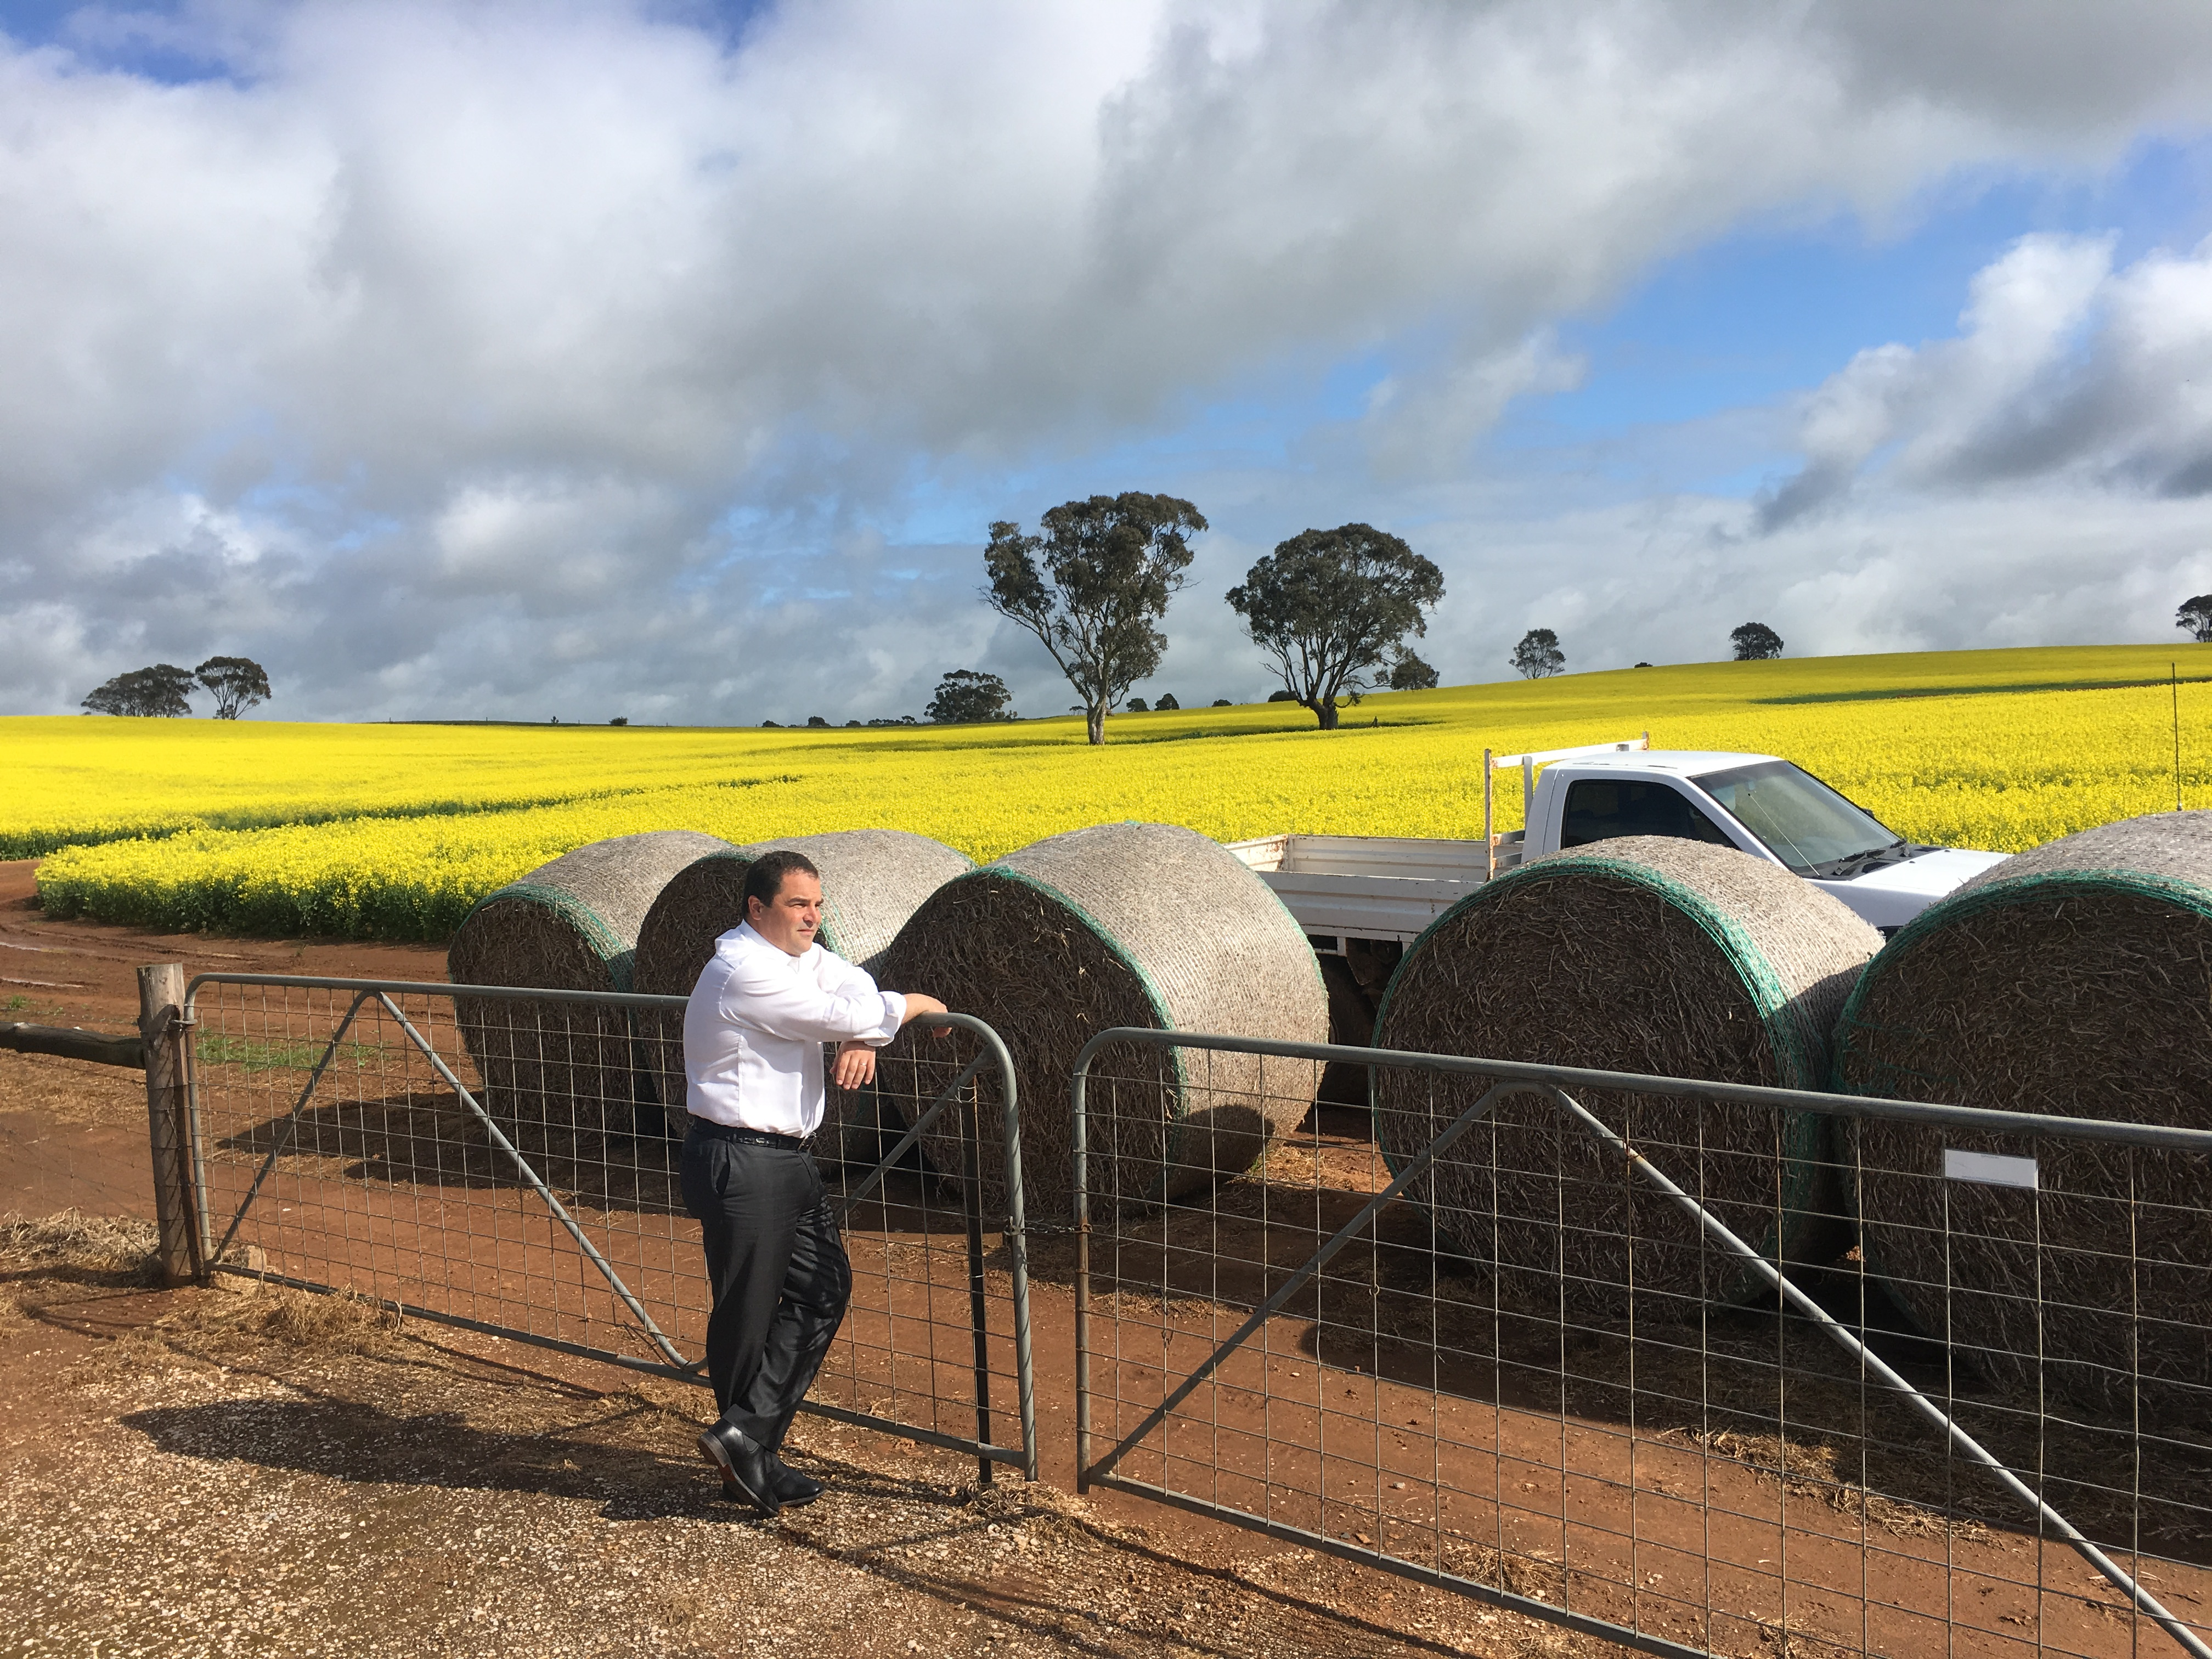 Pasin welcomes Federal Government assistance for farming smarter, not harder in Barker